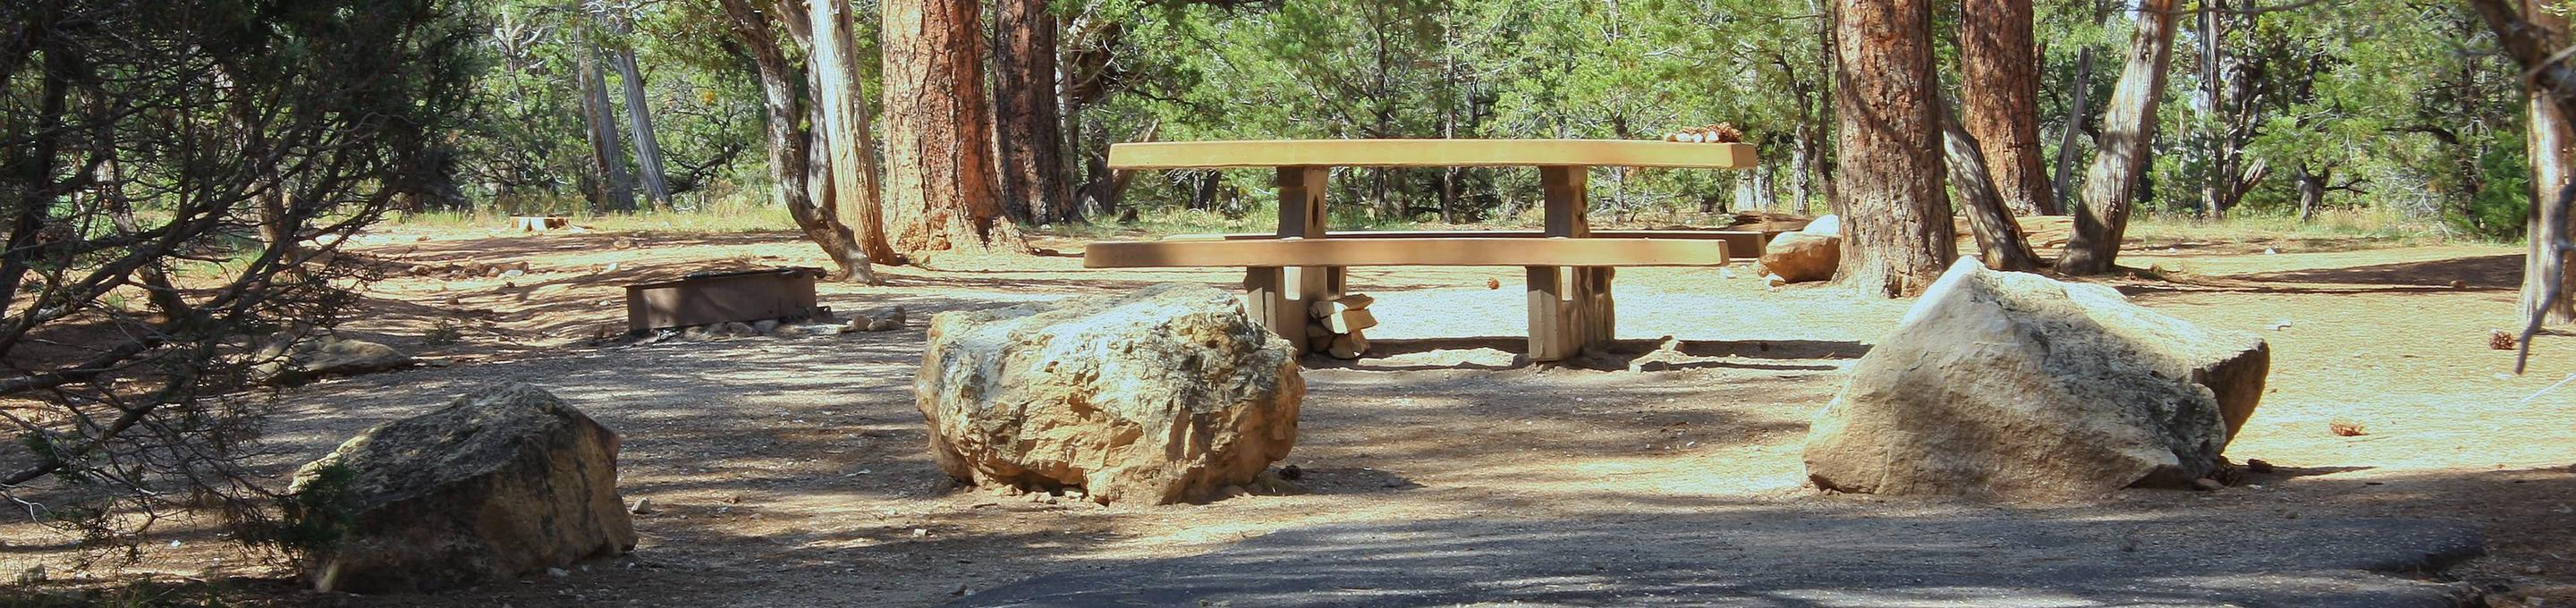 Picnic table, fire pit, and park spot, Mather CampgroundPicnic table, fire pit, and park spot for Oak Loop 261, Mather Campground